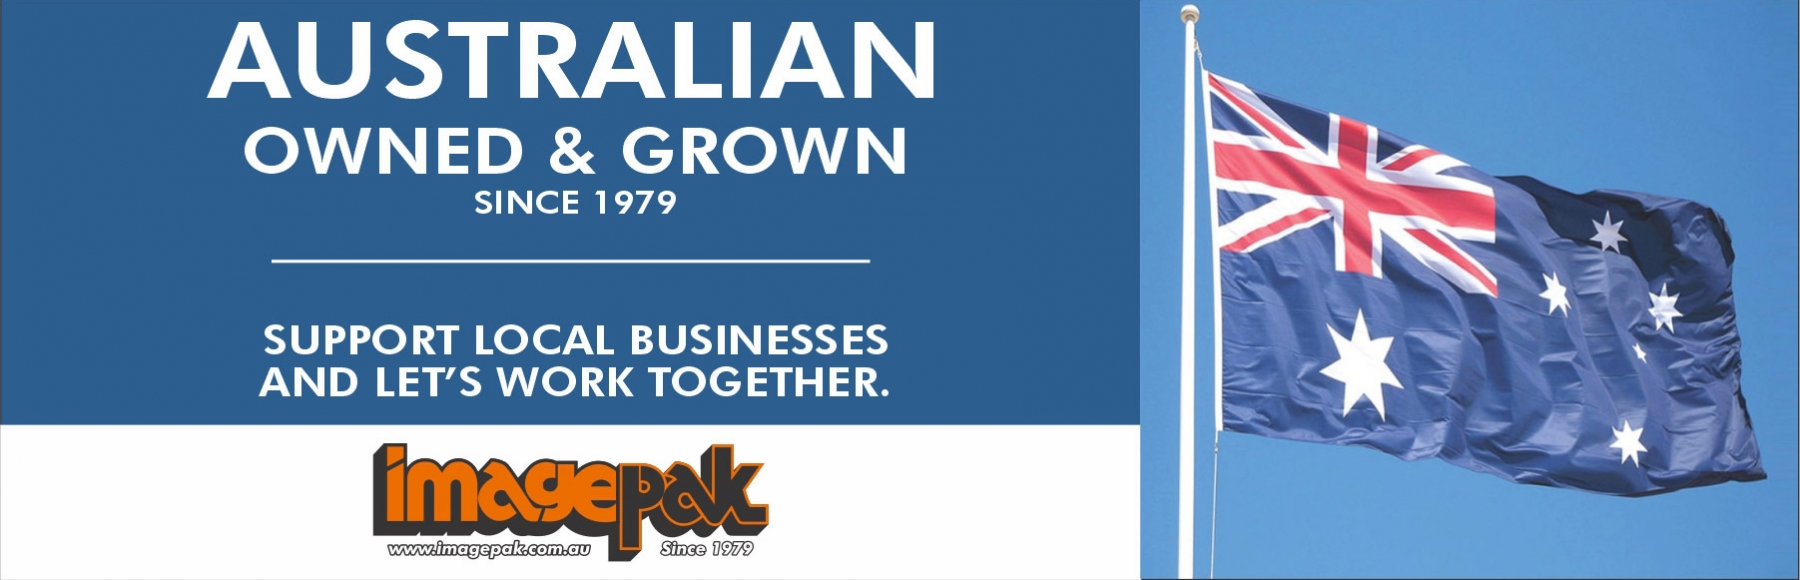 australian-owned-and-grown